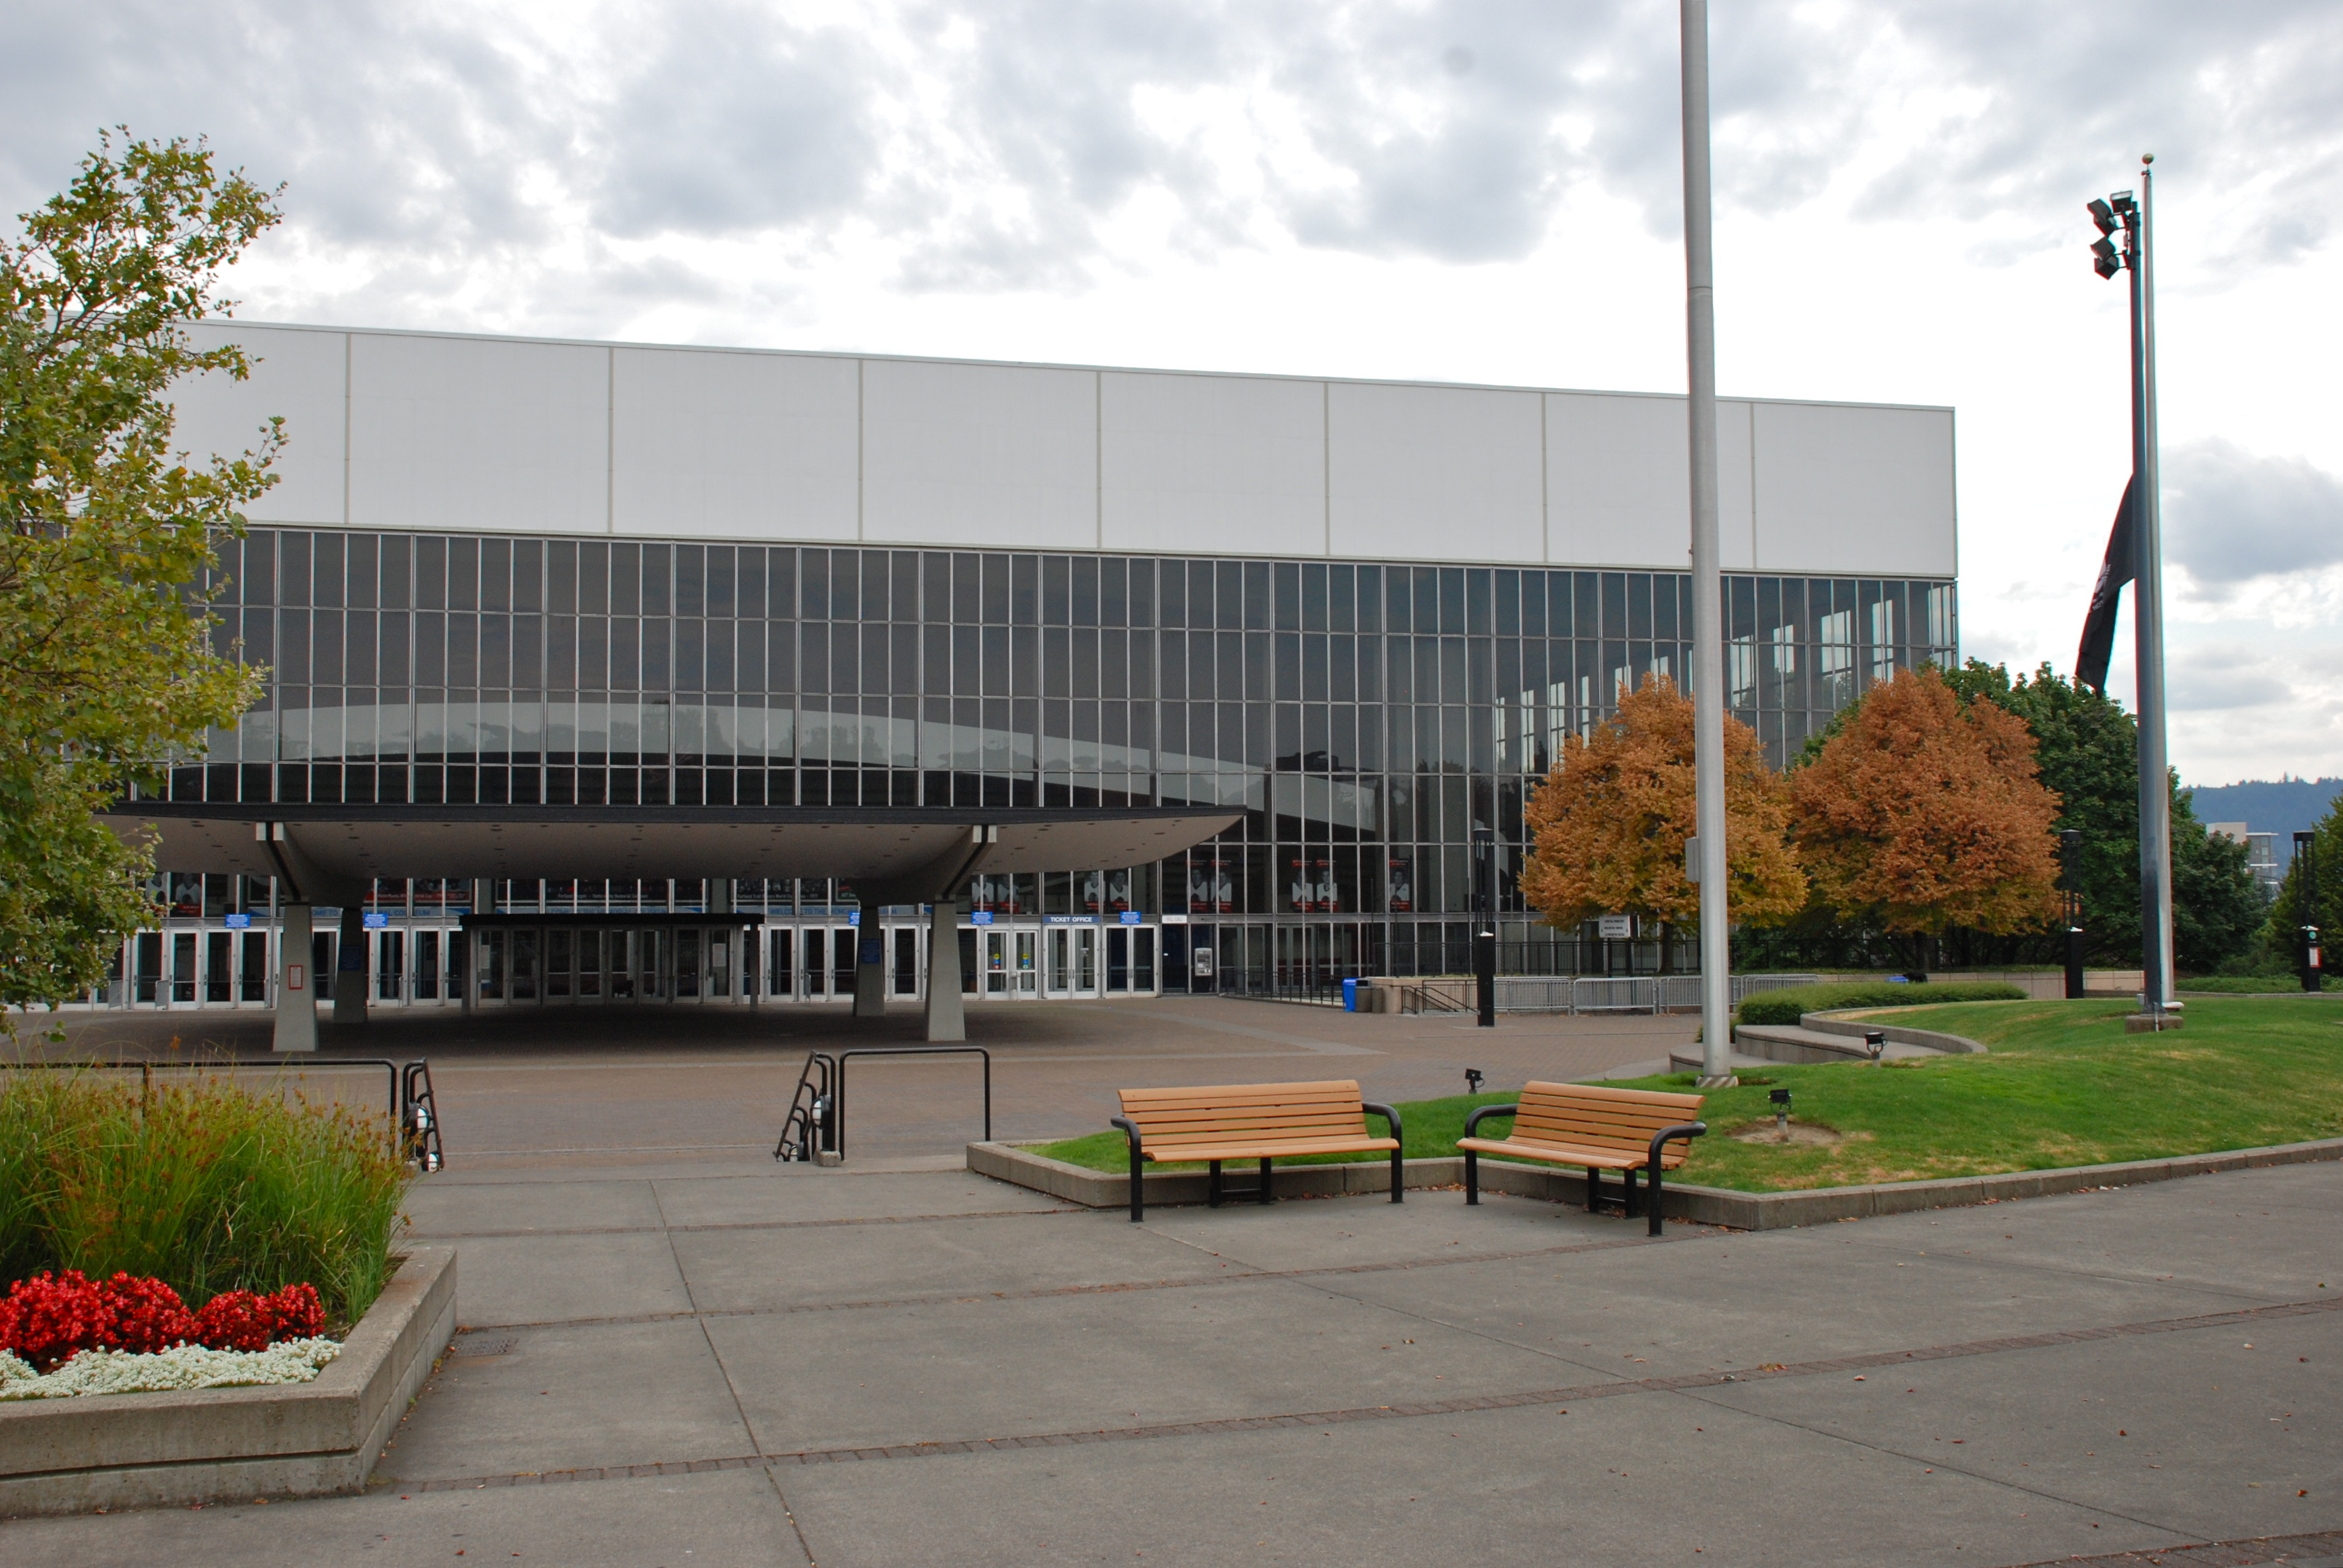 spokane map with File Veterans Memorial Coliseum In 2013   Portland  Oregon on 5554463717 further 6 3 2013 Hermiston Oregon To Coeur Dalene Idaho moreover 2705707 additionally MapClick php likewise 4927170554.